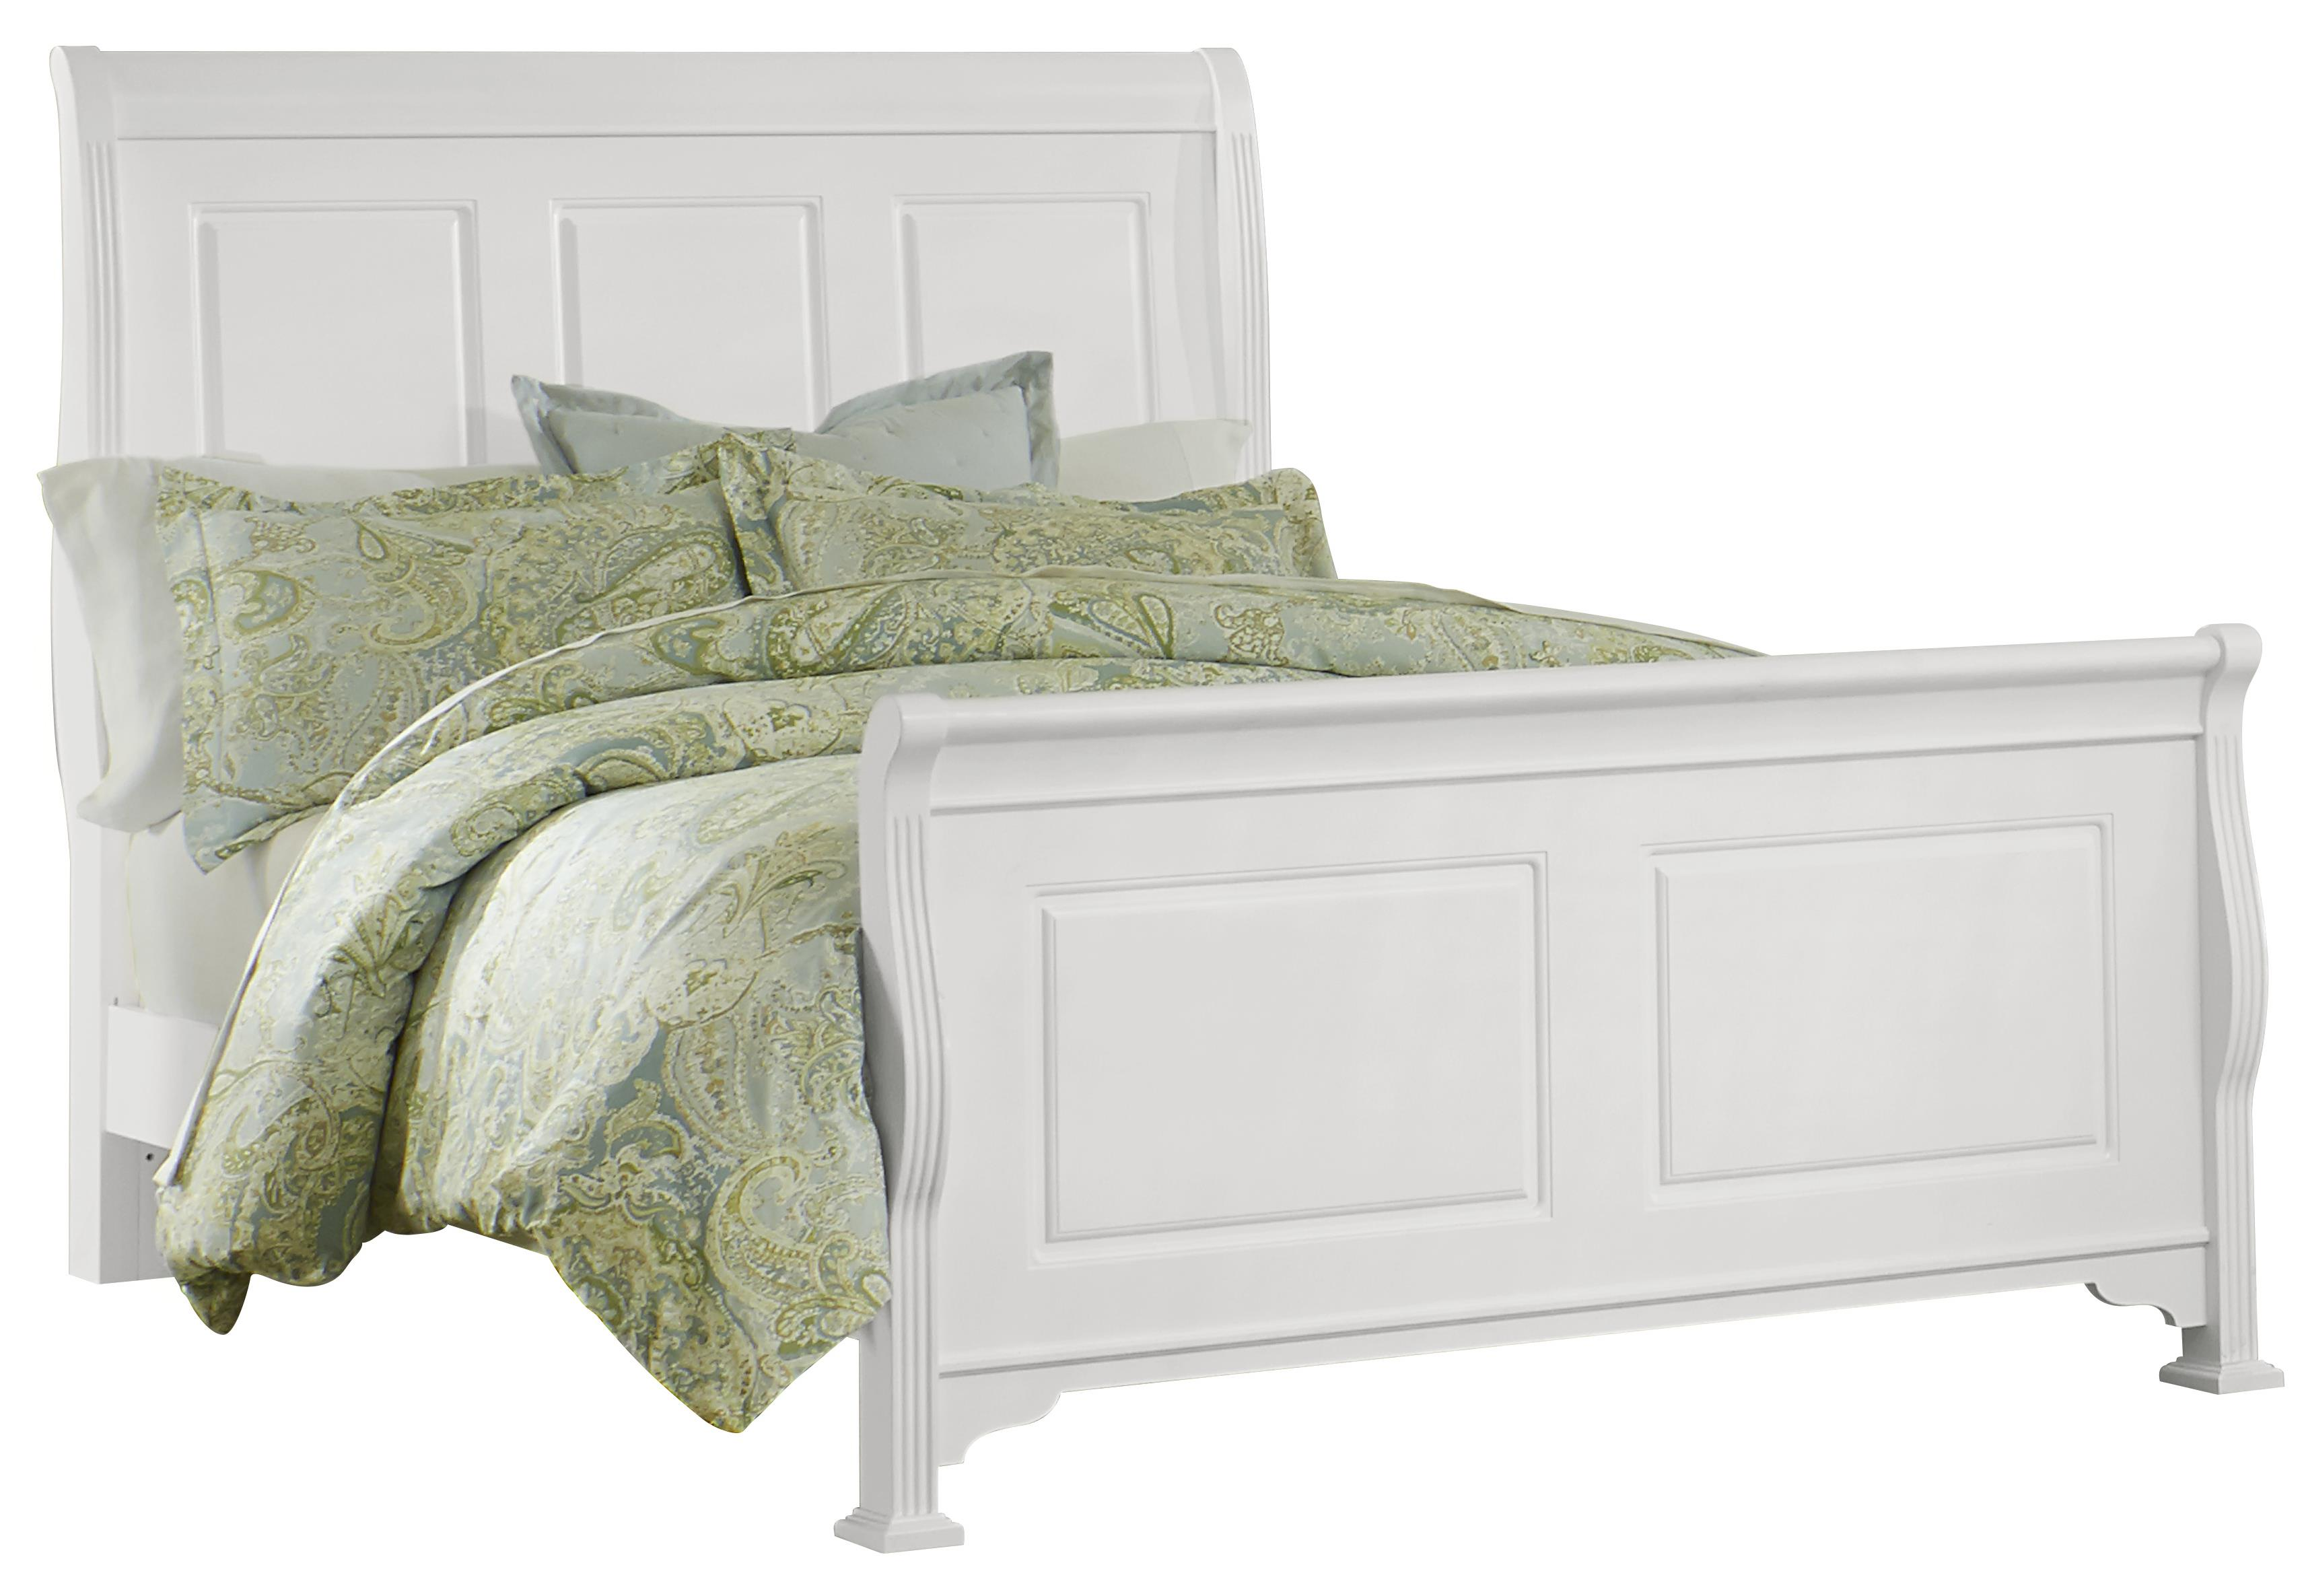 Vaughan Bassett French Market Queen Sleigh Bed - Item Number: 384-551+155+922